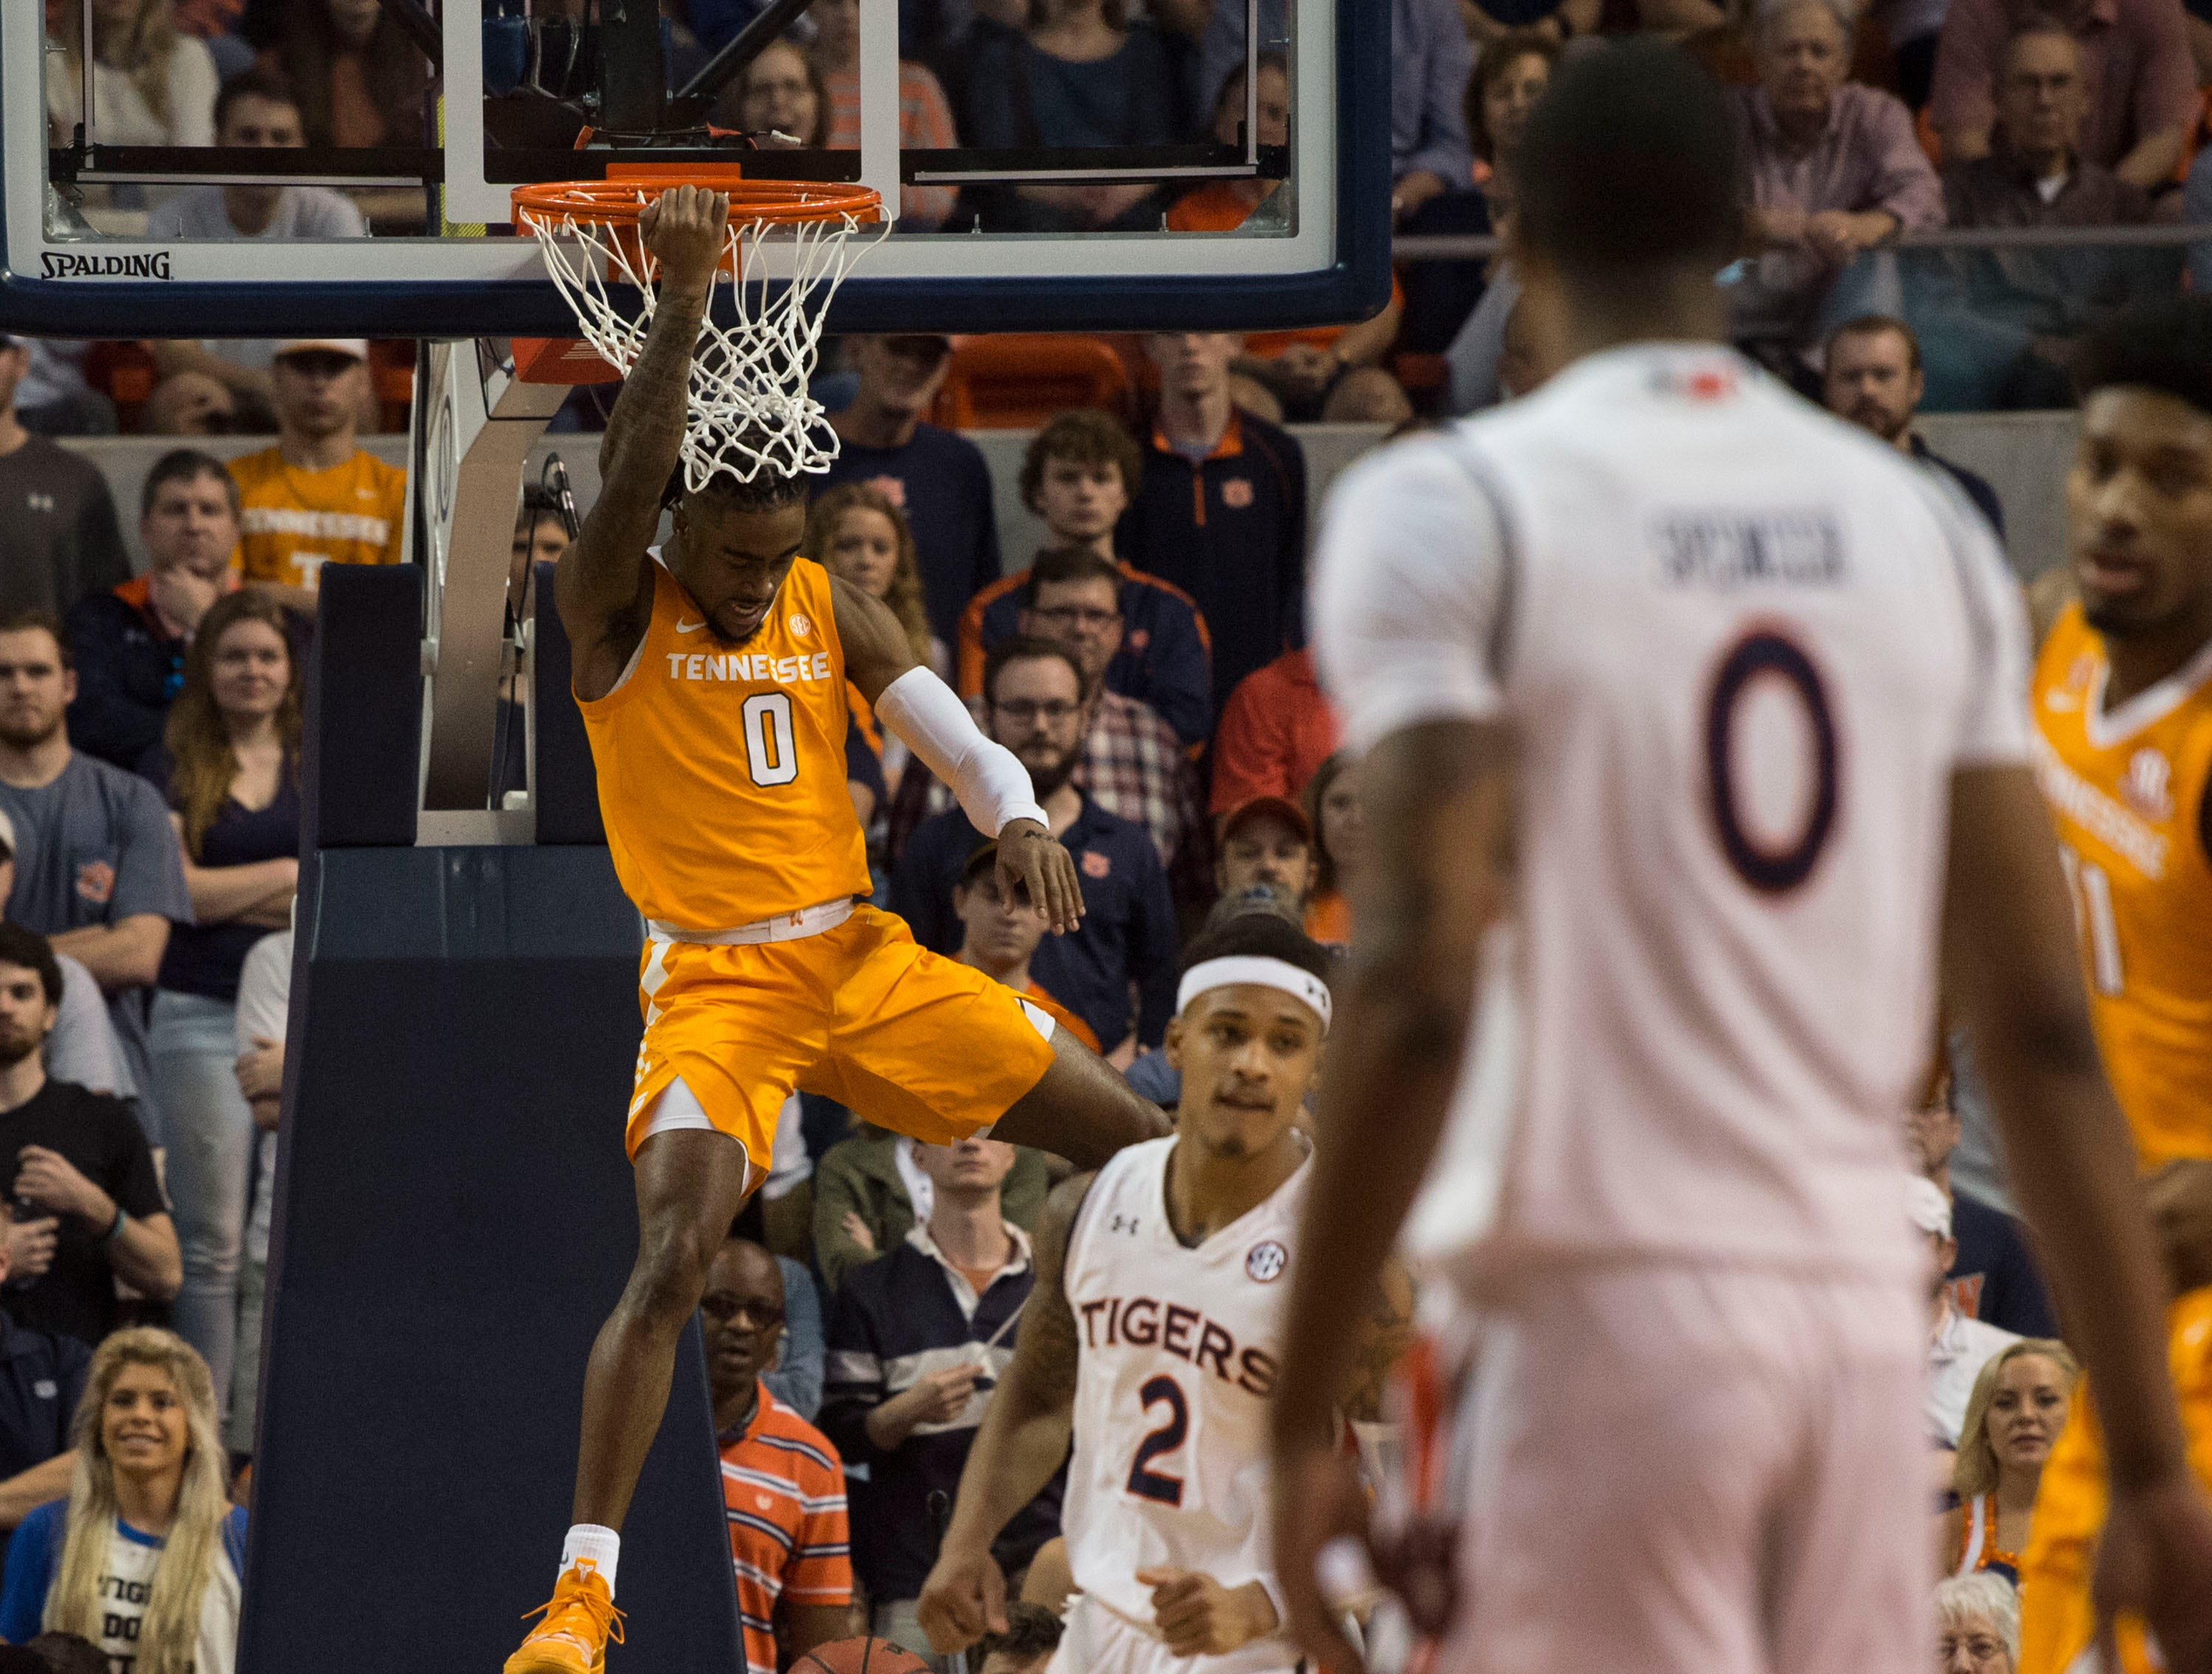 Tennessee guard Jordan Bone (0) dunks the ball on a fast break at Auburn Arena in Auburn, Ala., on Saturday, March 9, 2019. Tennessee leads Auburn 41-35 at halftime.